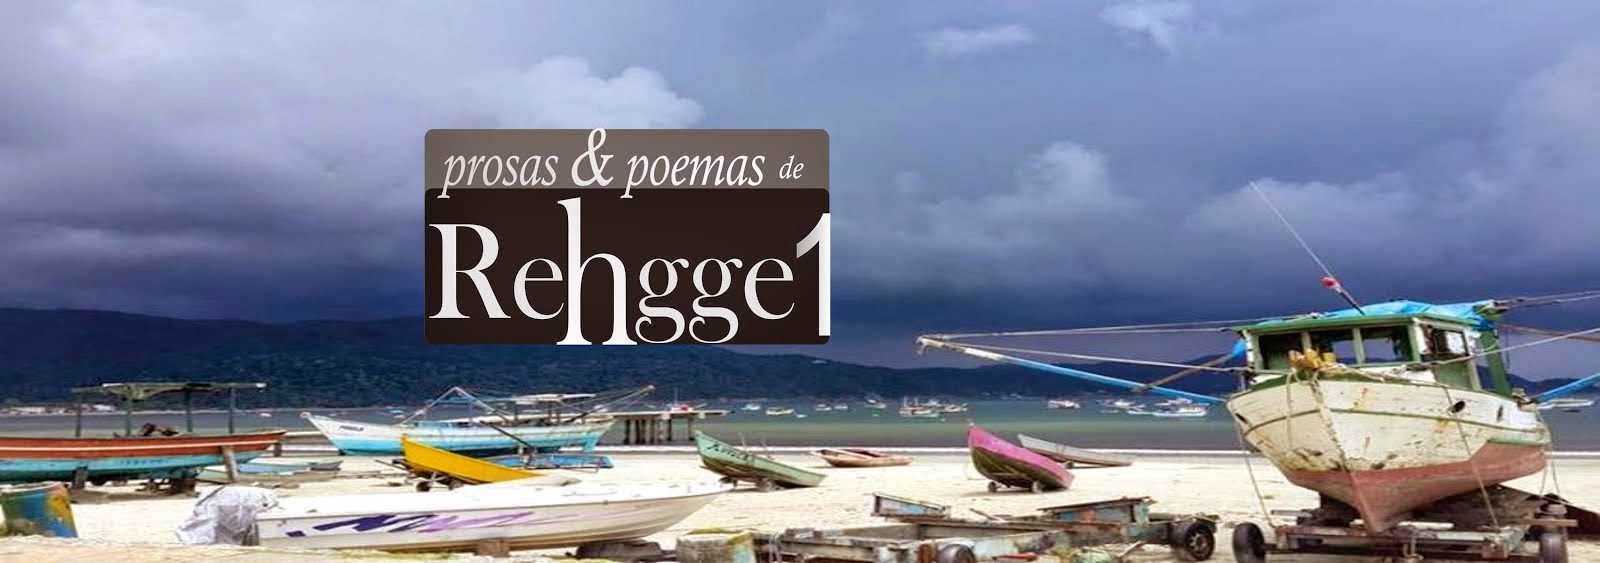 blogue do poeta e escritor Rehgge